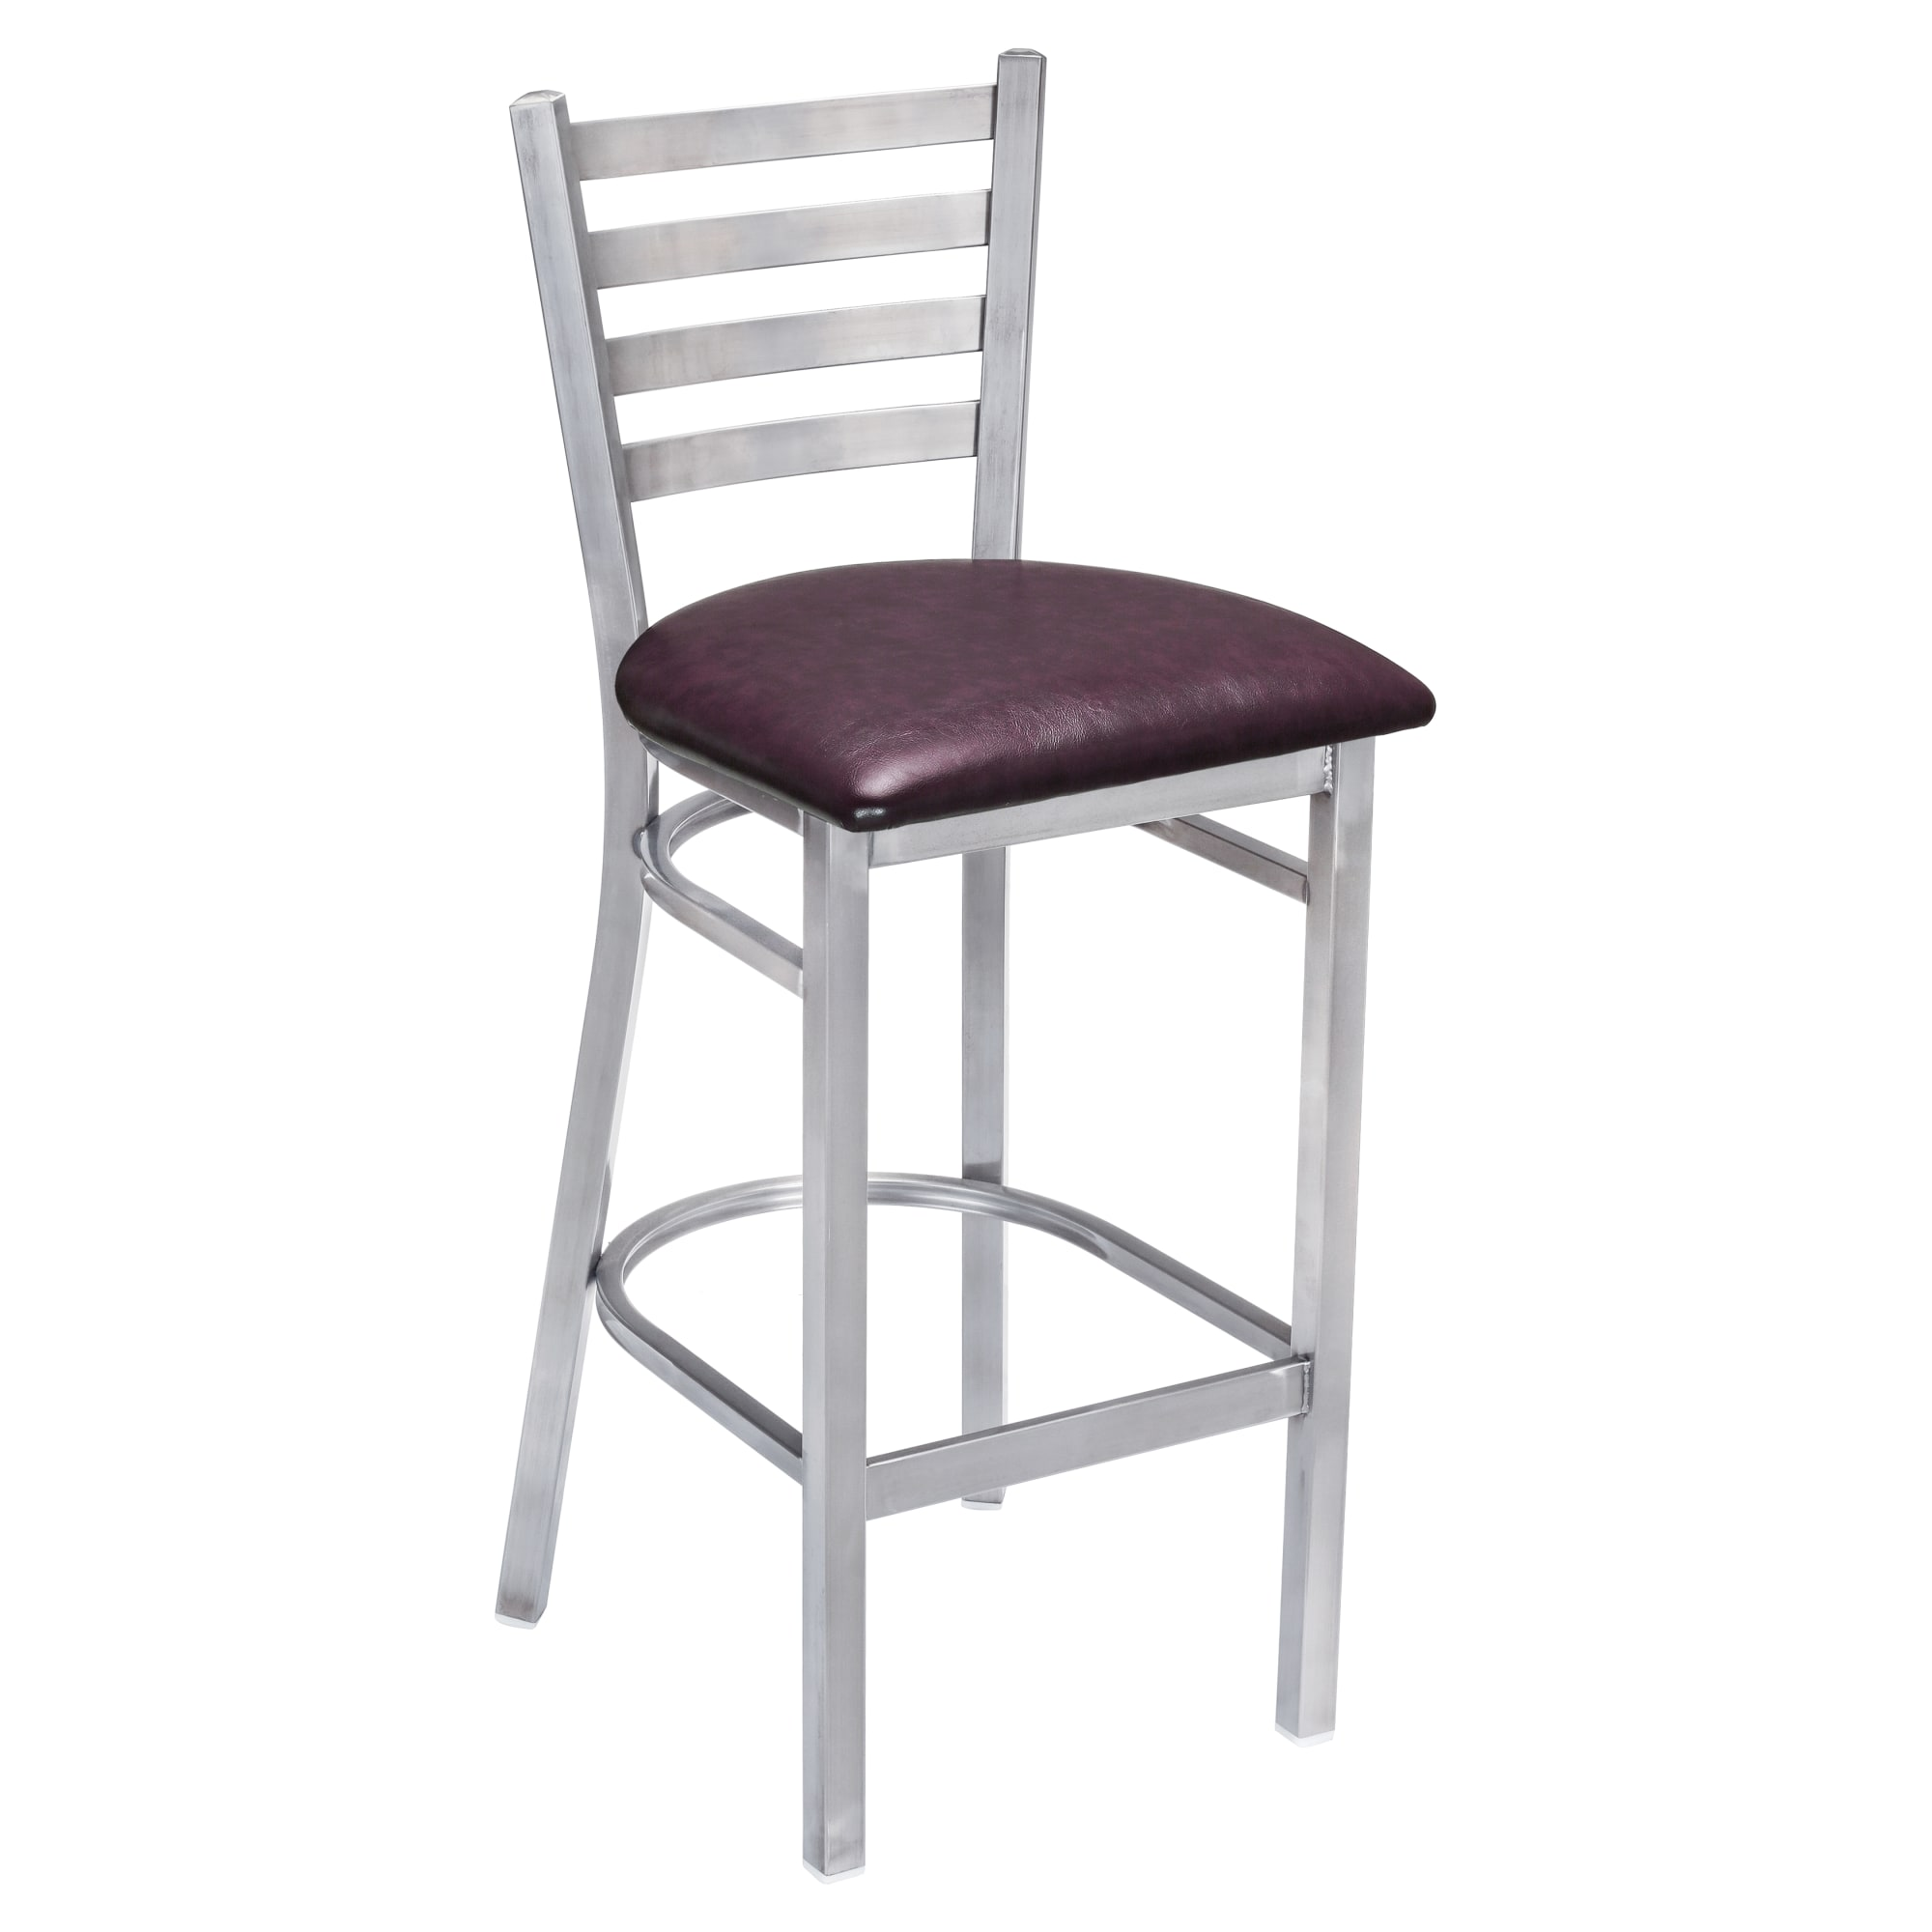 Metal Ladder Back Bar Stool Clear Coat with Metal Ladder Back Bar Stool Clear Coat